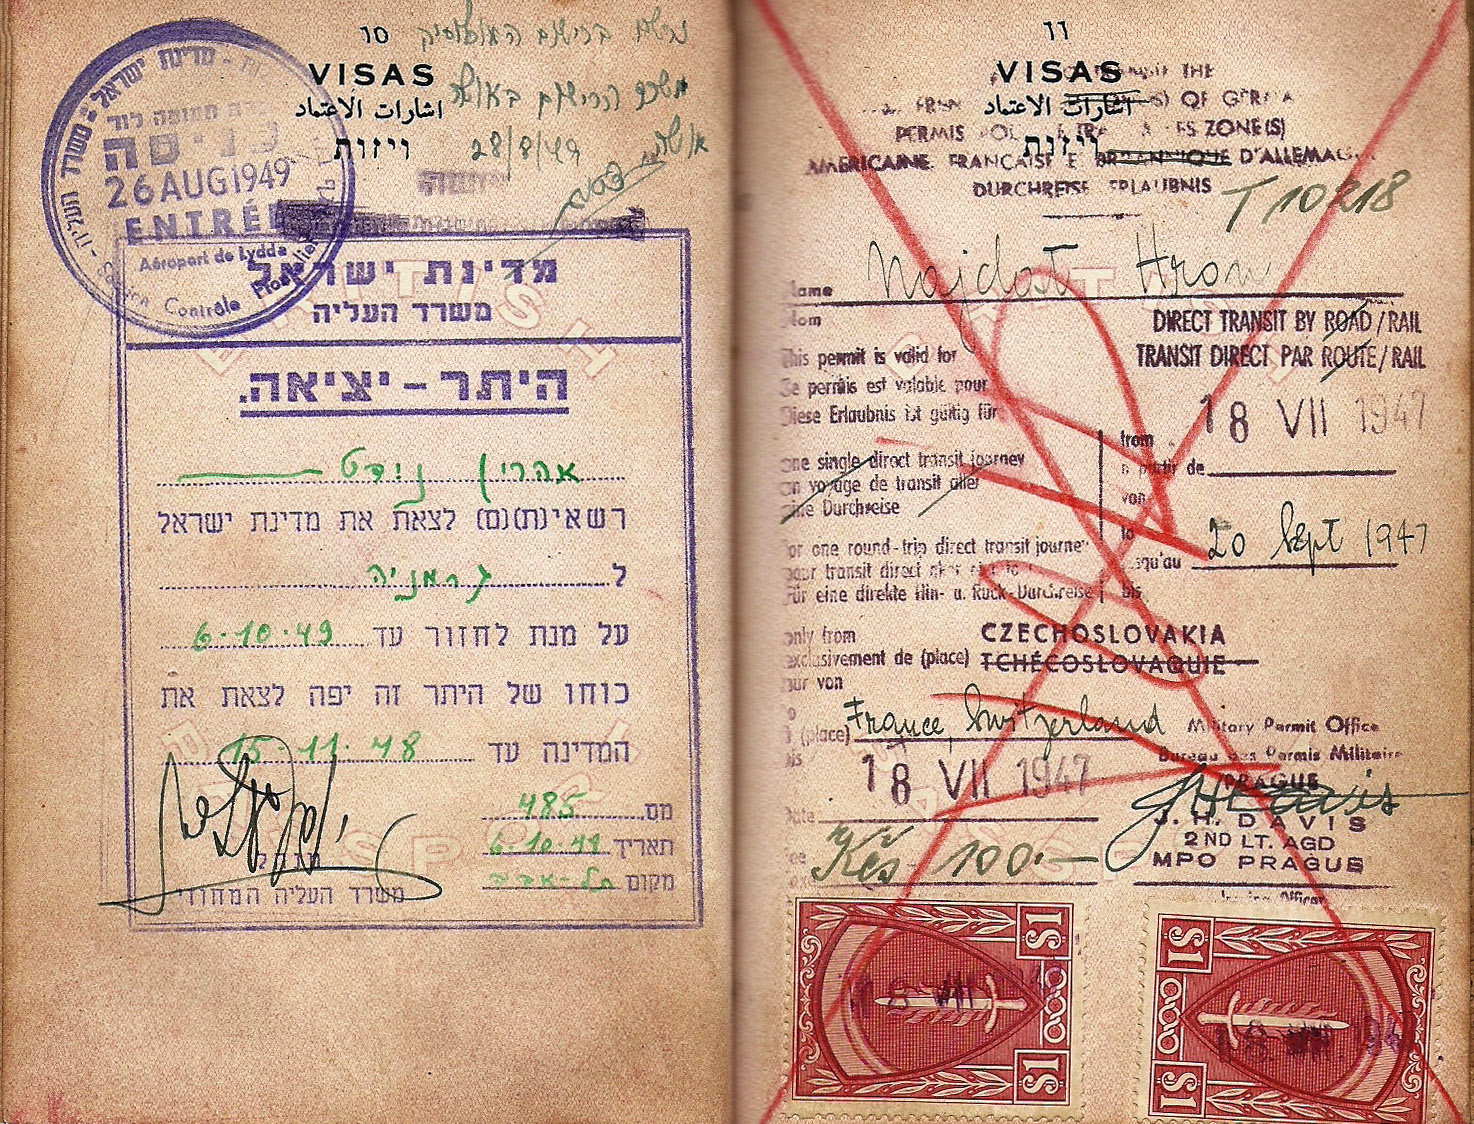 Israeli special visa for Germany - 1948